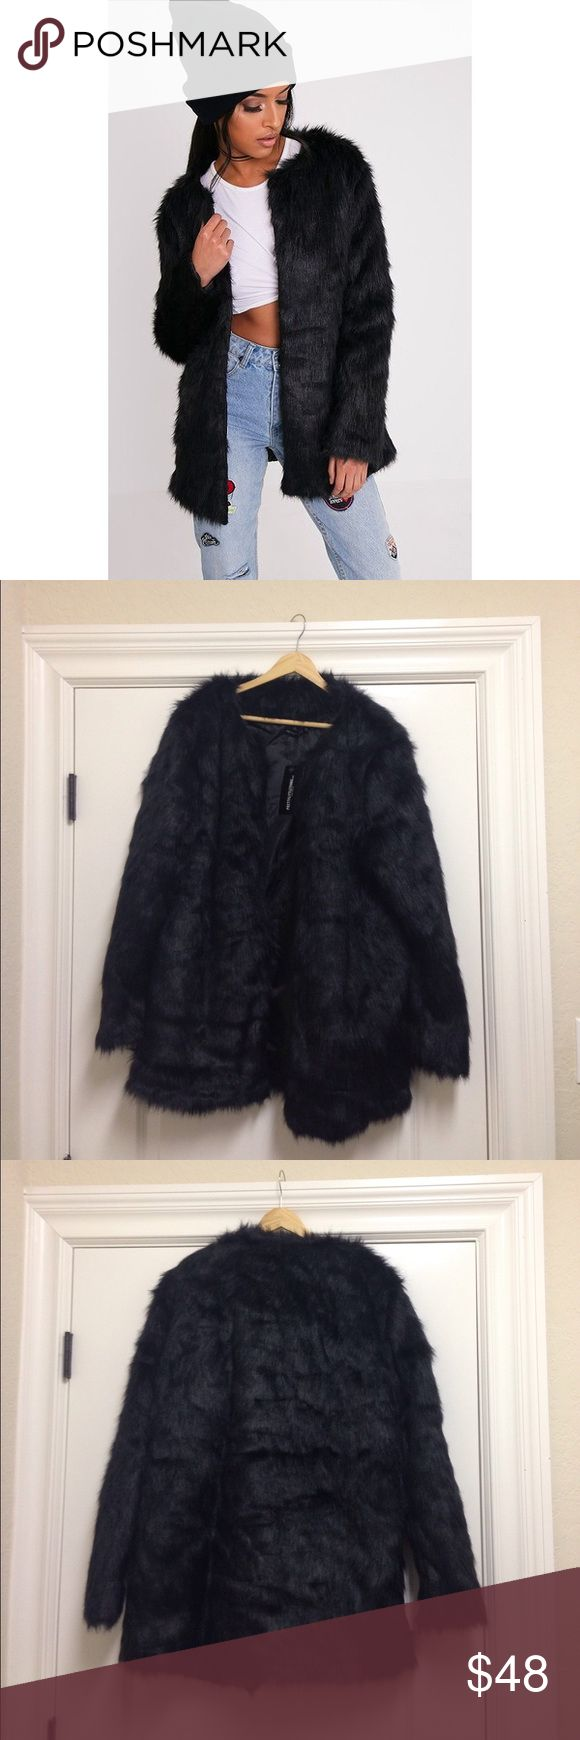 NWT BLACK FAUX FUR COAT BLACK FAUX FUR COAT - GET WINTER GLAM IN THIS FAUX FUR COAT WITH HOOK AND EYE FASTENING AND LONG LINE LENGTH. STYLE IT OVER A CUTE DRESS AND HEELS FOR THE ULTIMATE EVENING LOOK. APPROX. 32 INCHES LONG / SIZE UK 14 = US SIZE 10 / L Jackets & Coats